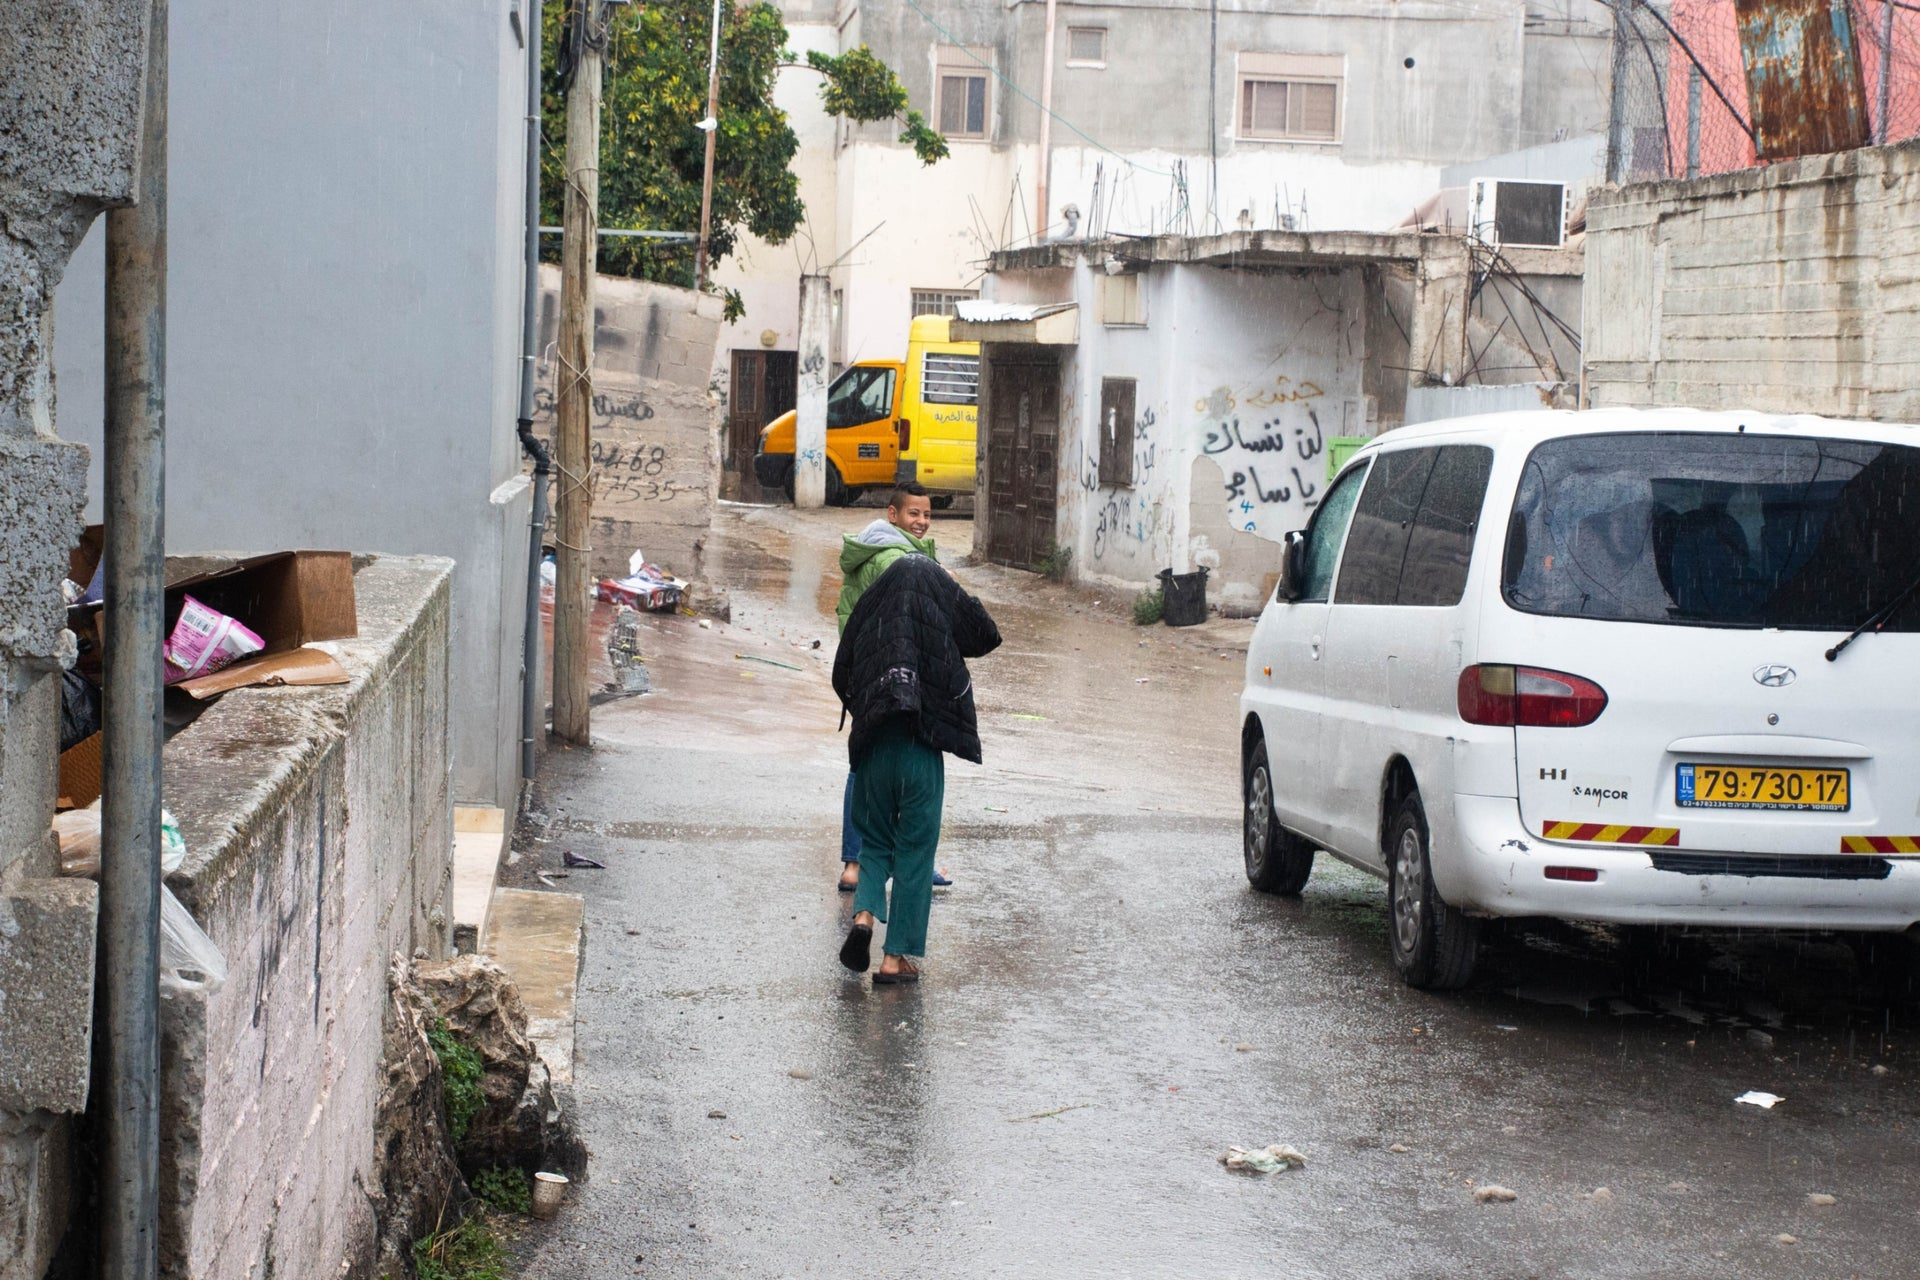 Local children getting caught in a heavy shower on the narrow streets of Deheisheh, near Bethlehem, November 2019.